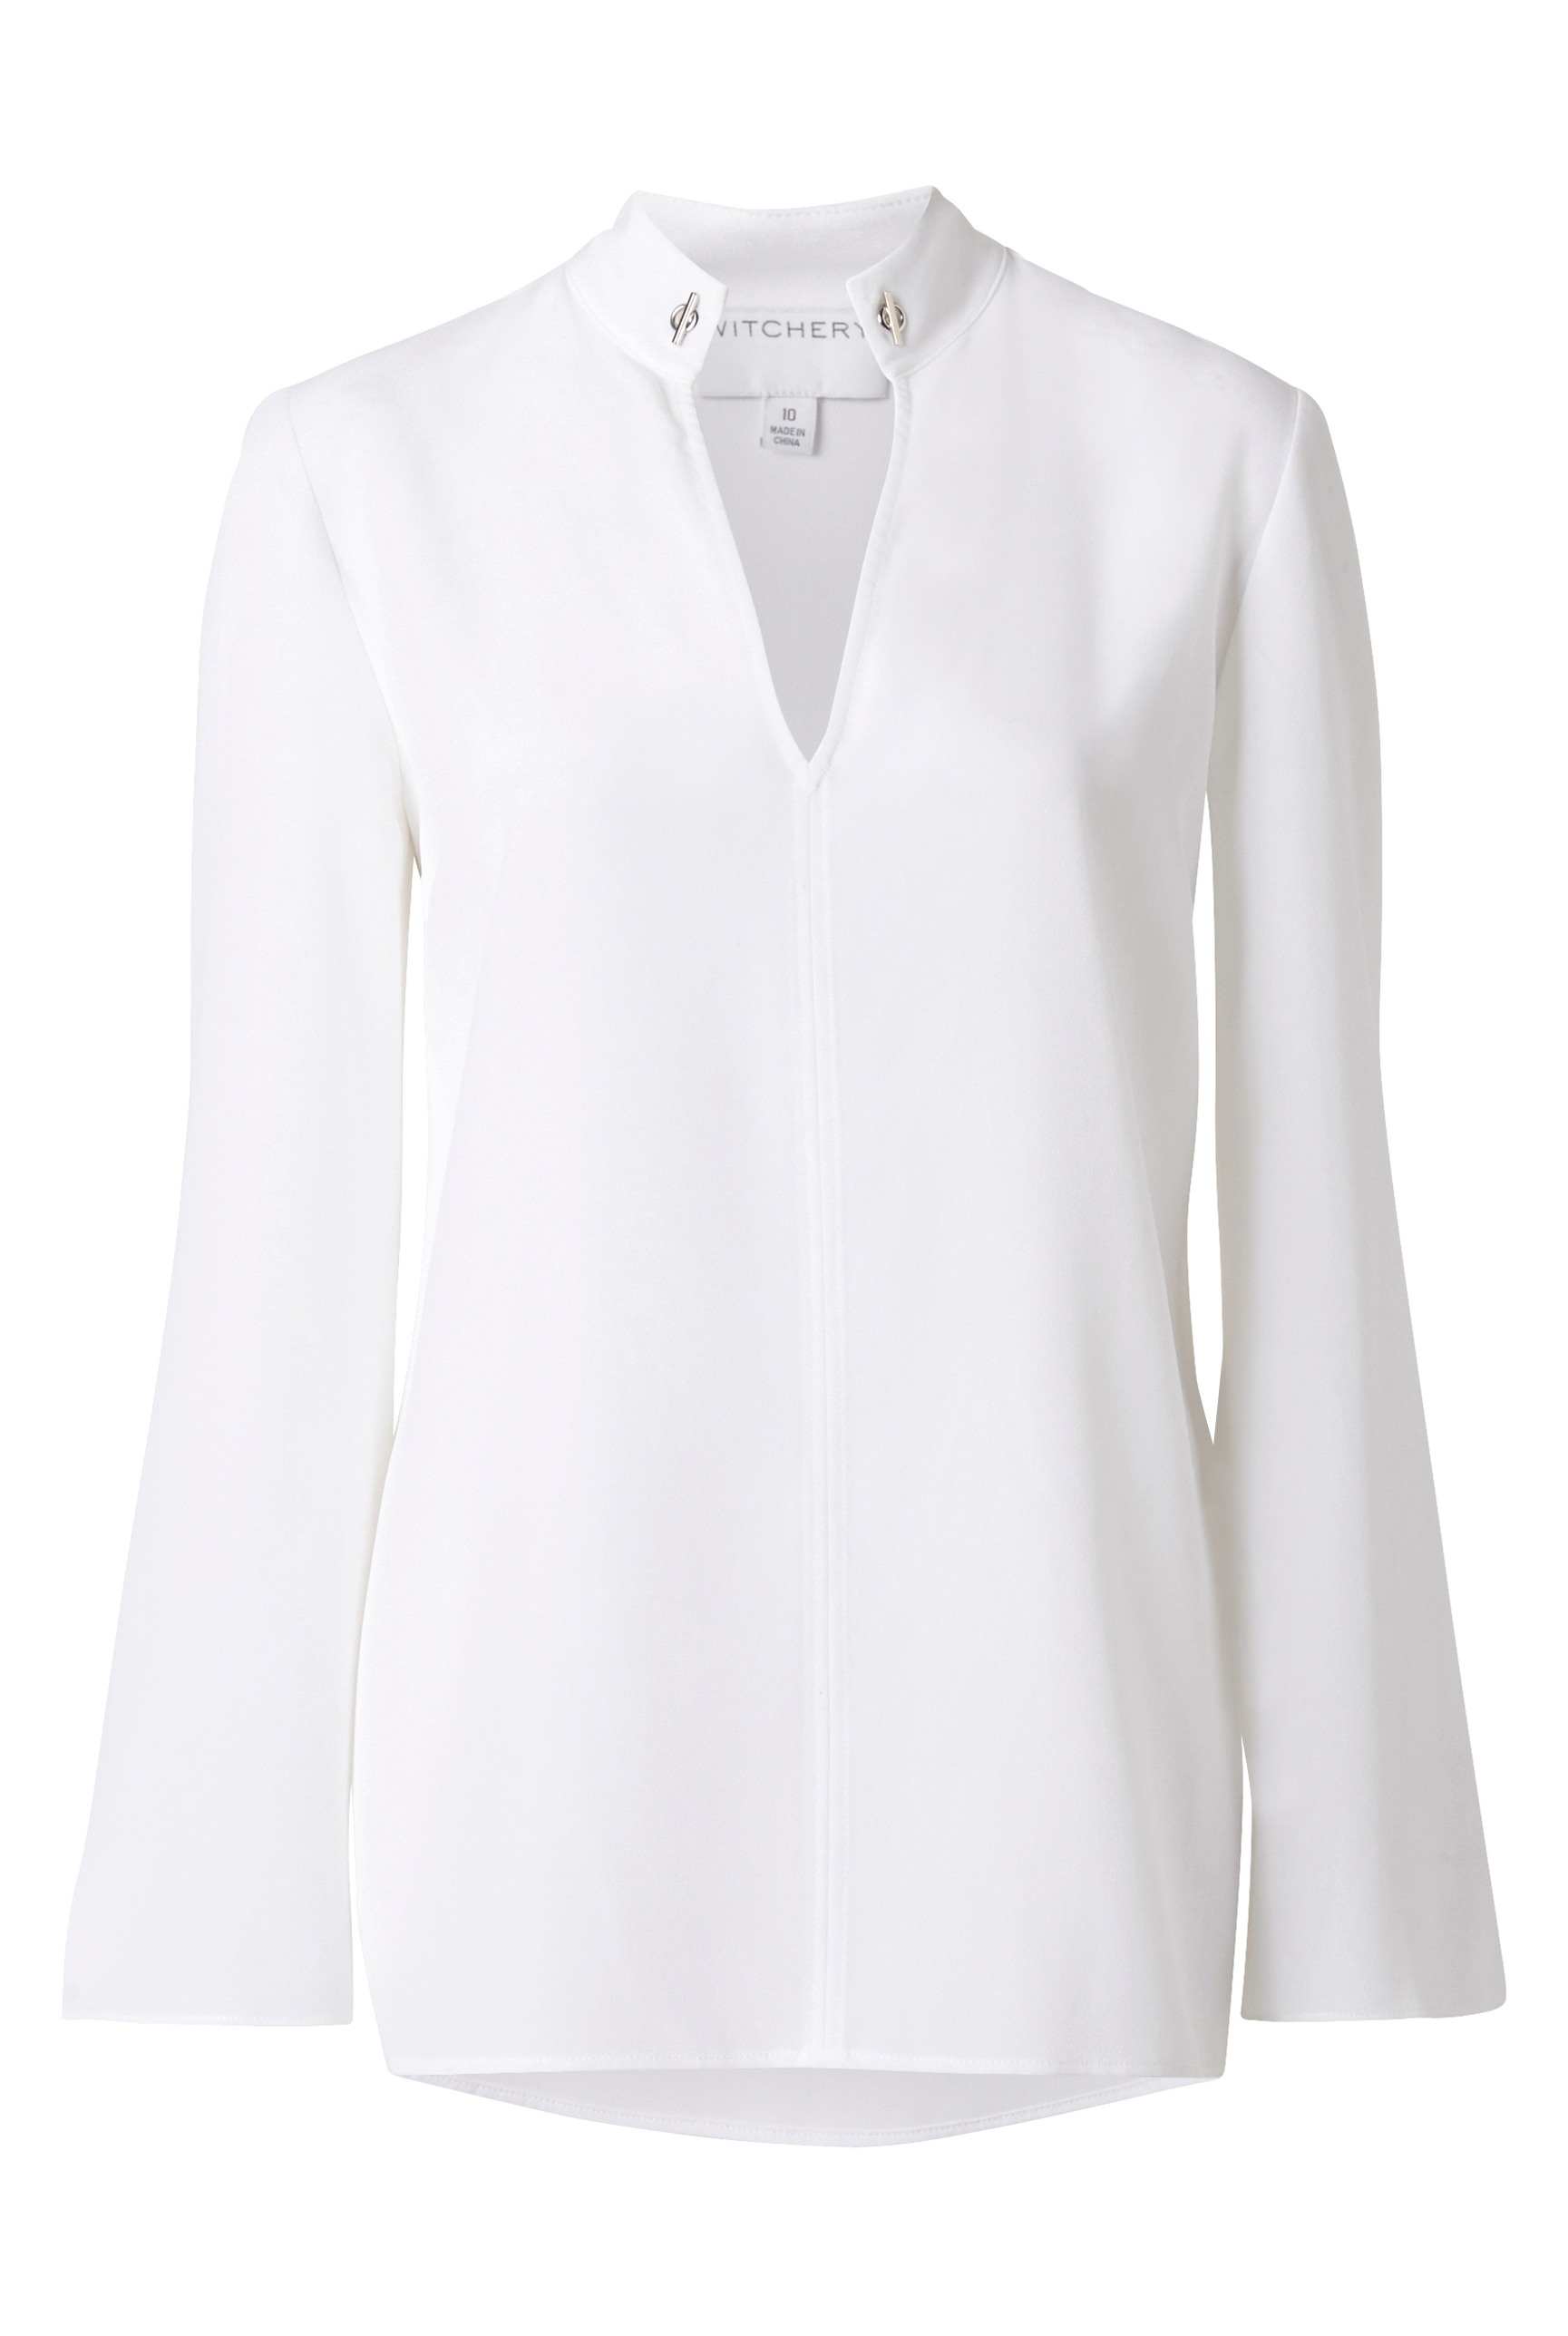 60208481_Witchery OCRF Link Detail Shirt, RRP$159.90